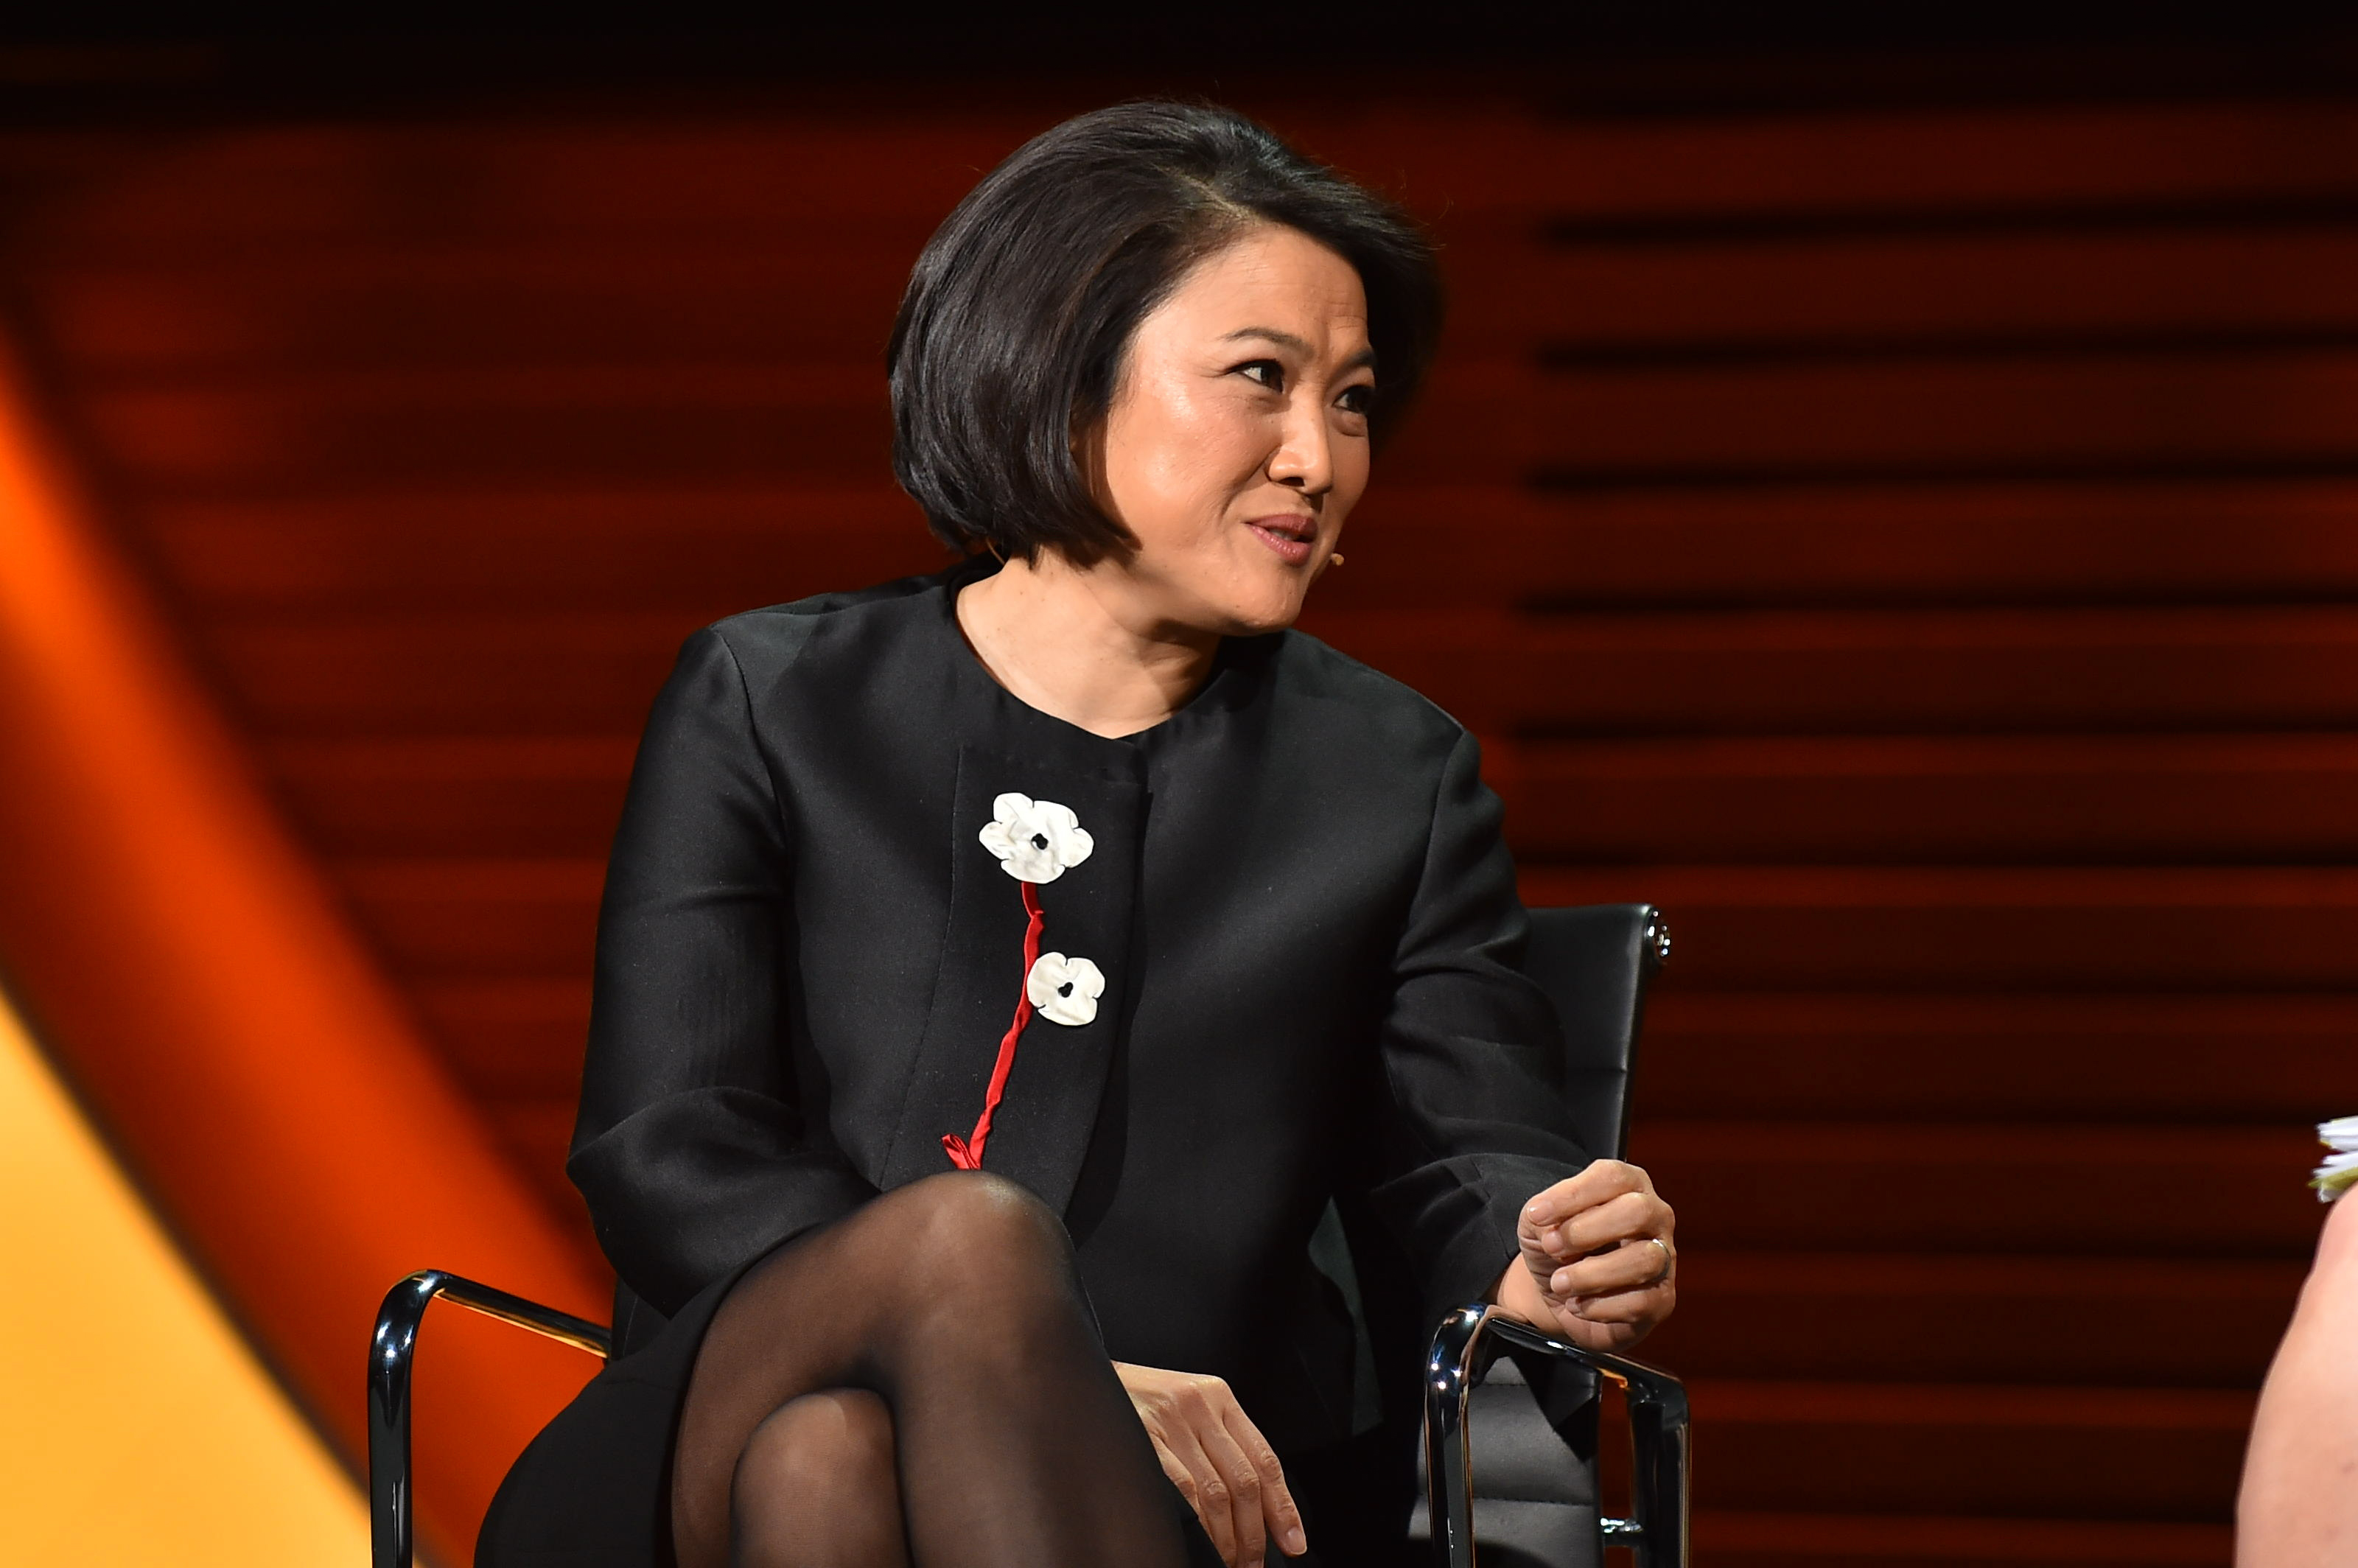 Zhang Xin, Co-founder and CEO, SOHO China on 'The Woman Who Built Beijing' at The 2017 Women In The World Summit in New York City; 4/6/2017